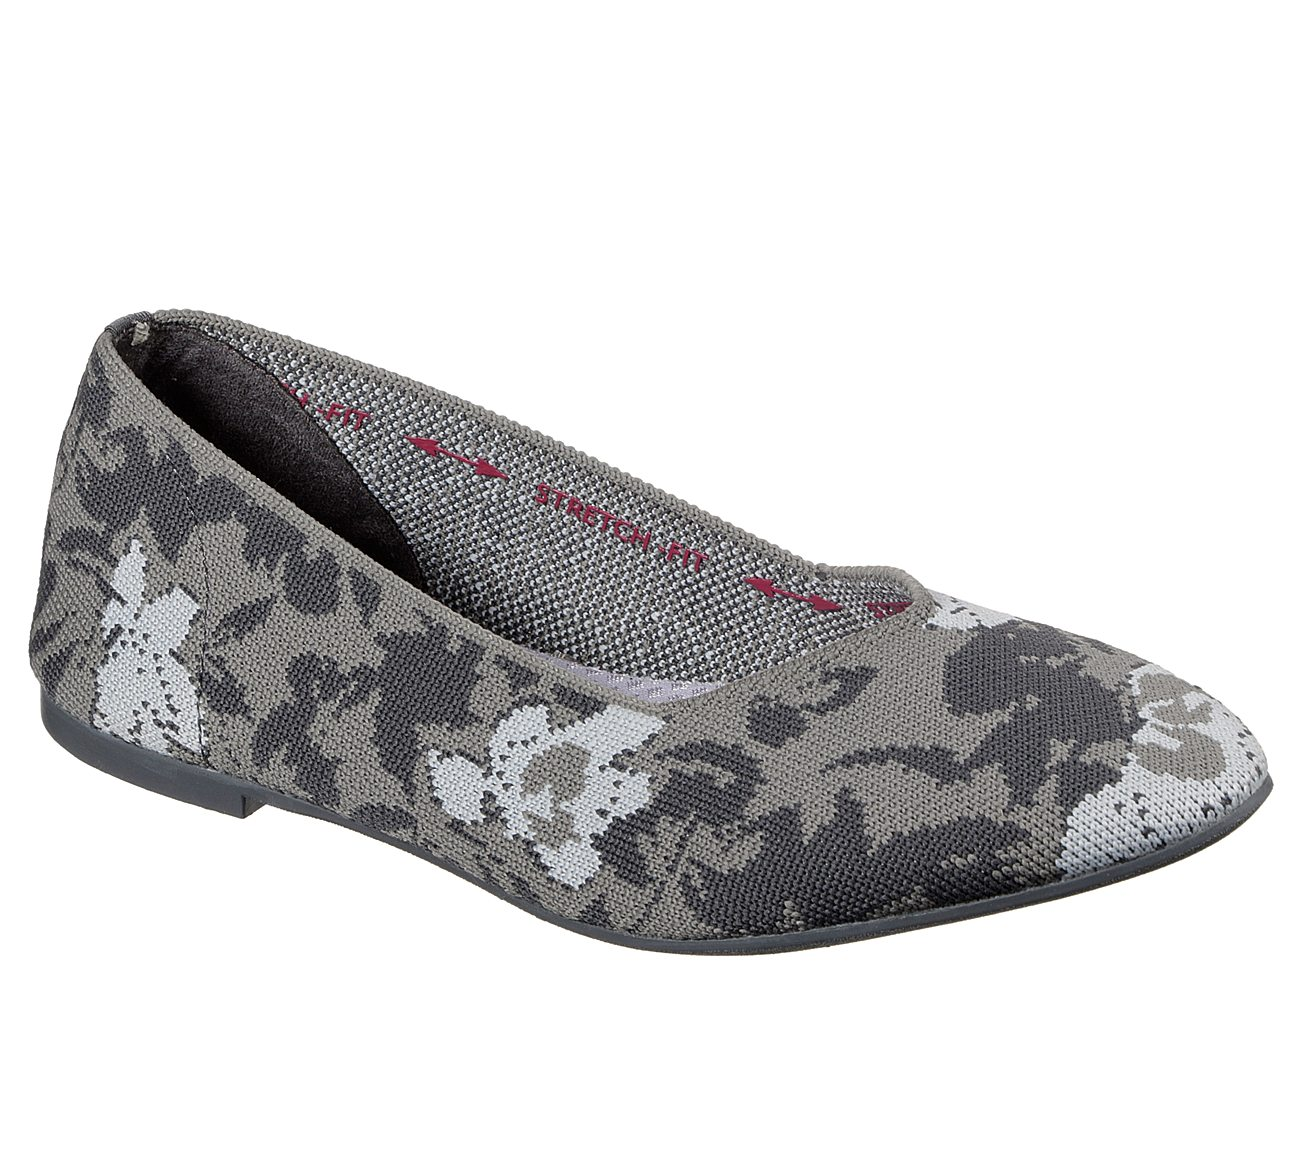 Buy Skechers Cleo Camfloral Modern Comfort Shoes